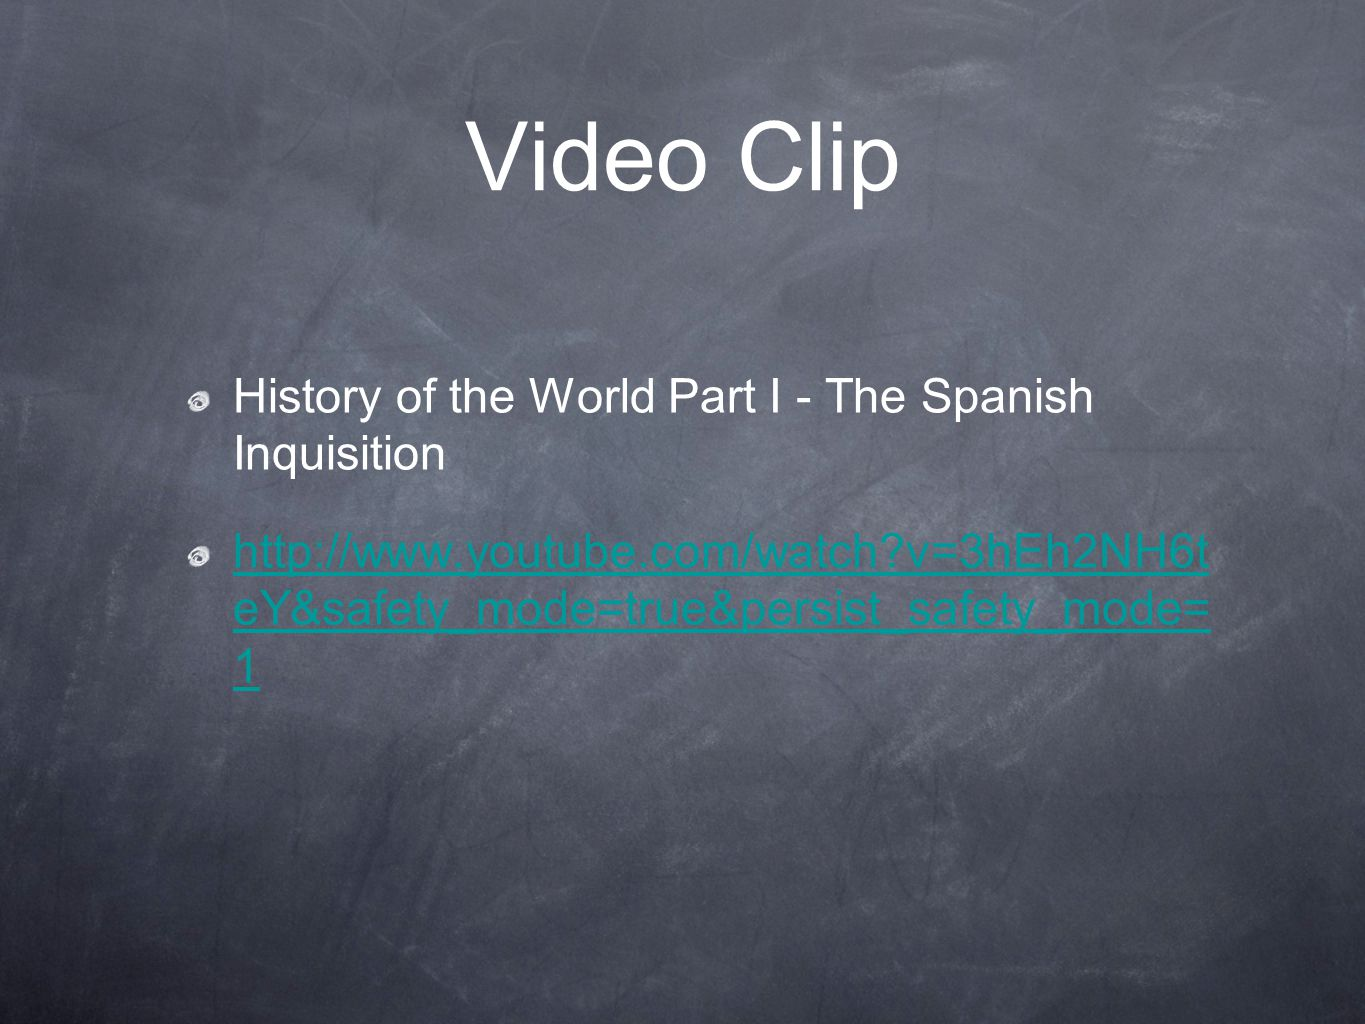 Video Clip History of the World Part I - The Spanish Inquisition